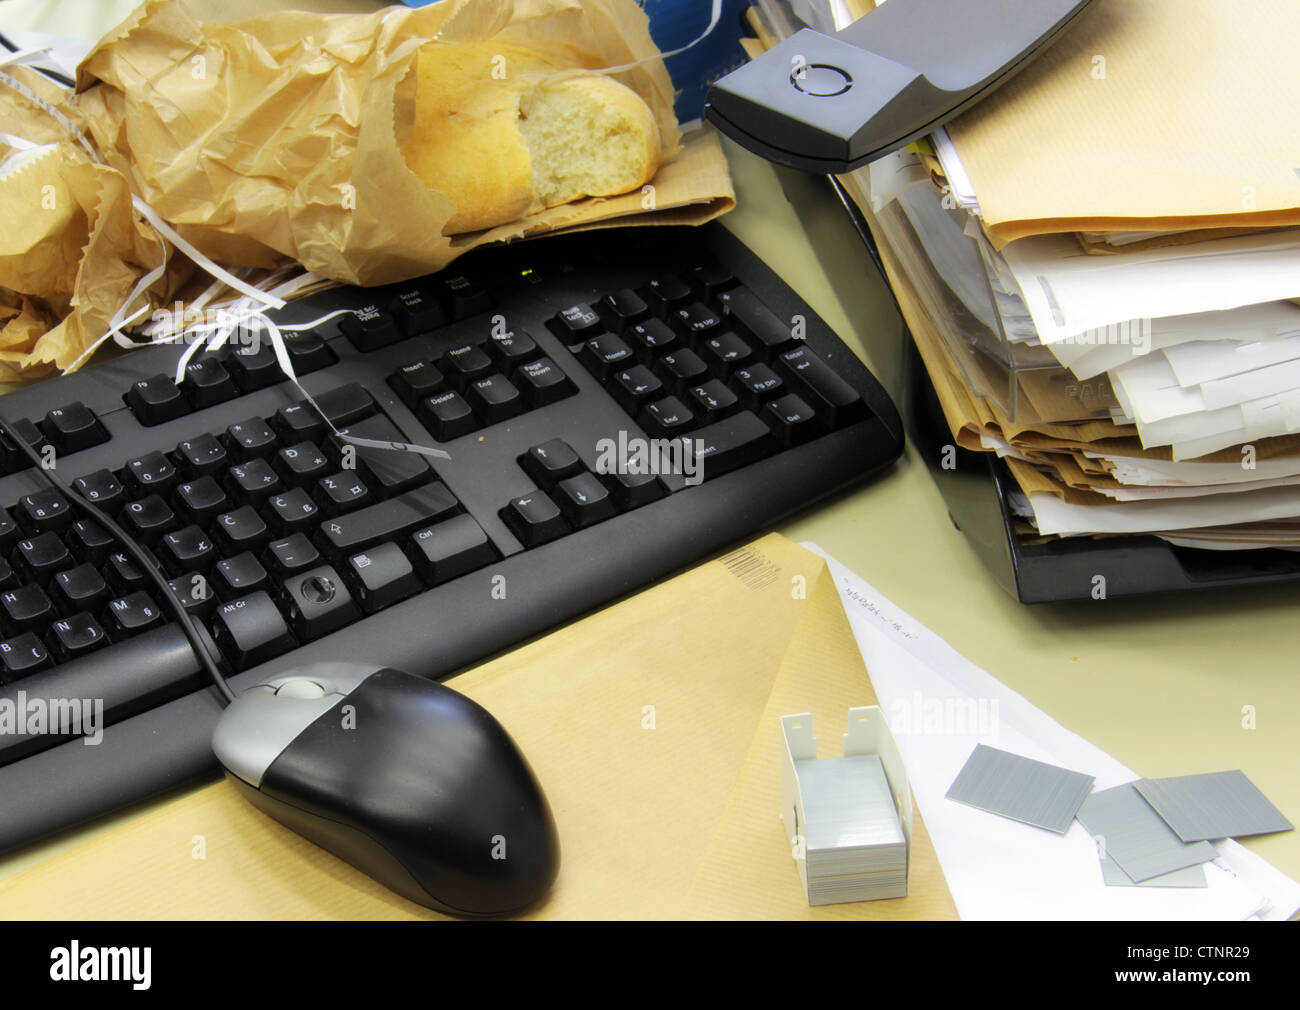 A mess in the office. - Stock Image